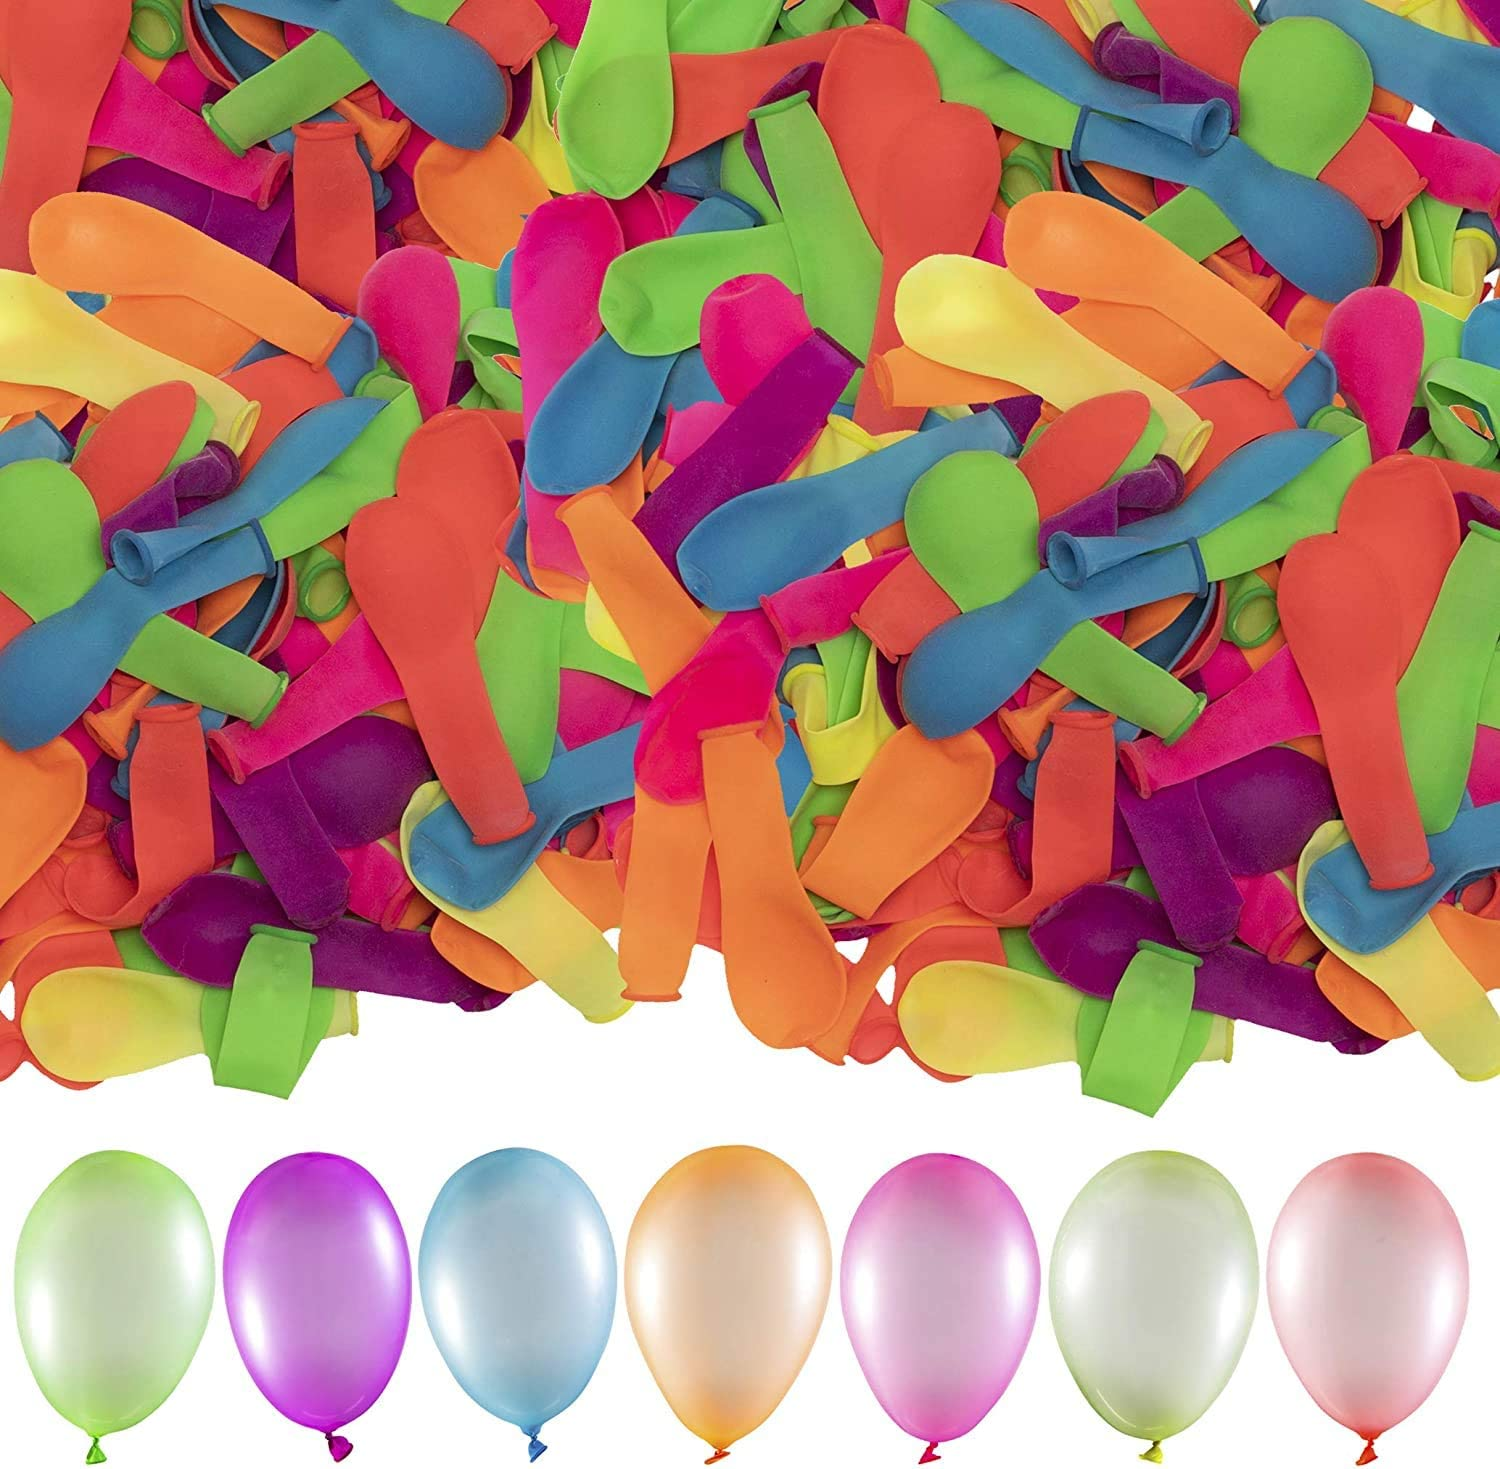 Retail Sign Systems Water Balloons for Kids Girls Boys Balloons Set Party Games Quick Fill Balloons 296 Bunches for Swimming Pool Outdoor Summer Fun